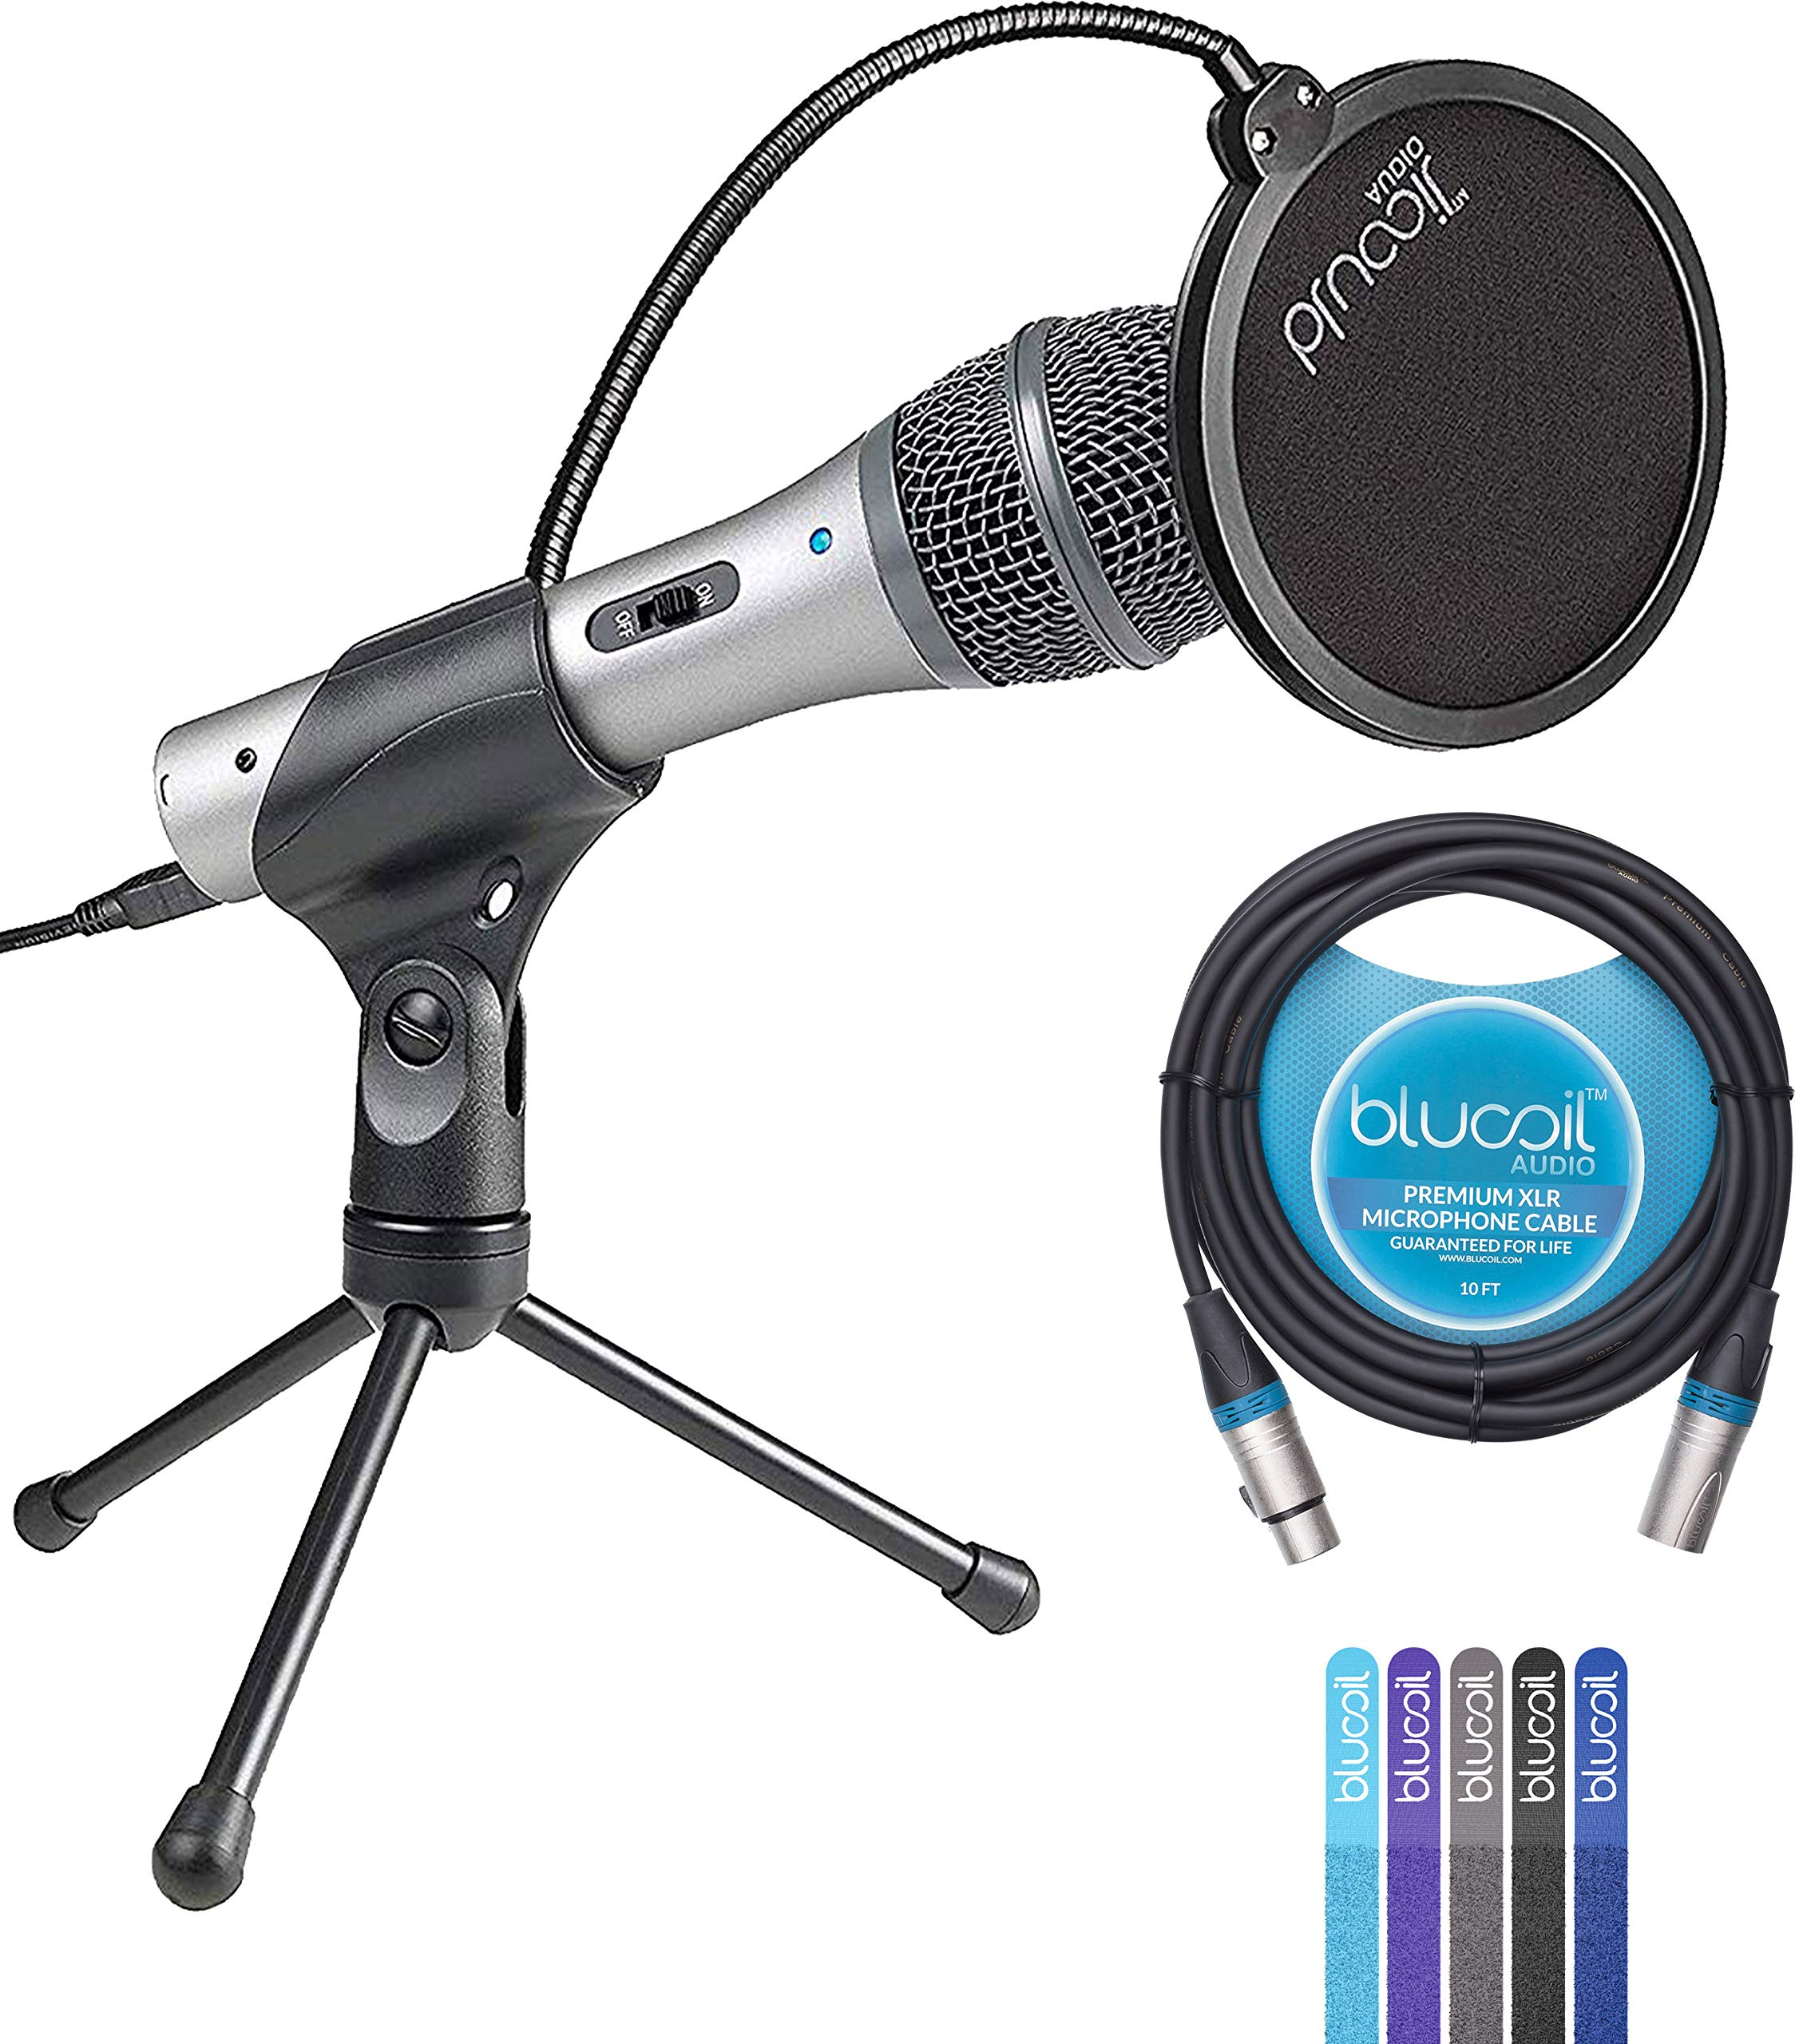 Audio-Technica ATR2100-USB Handheld Cardioid Dynamic USB and XLR Microphone Bundle with Blucoil Pop Filter, 10-Ft XLR Cable and 5-Pack of Reusable Cable Ties by Blucoil